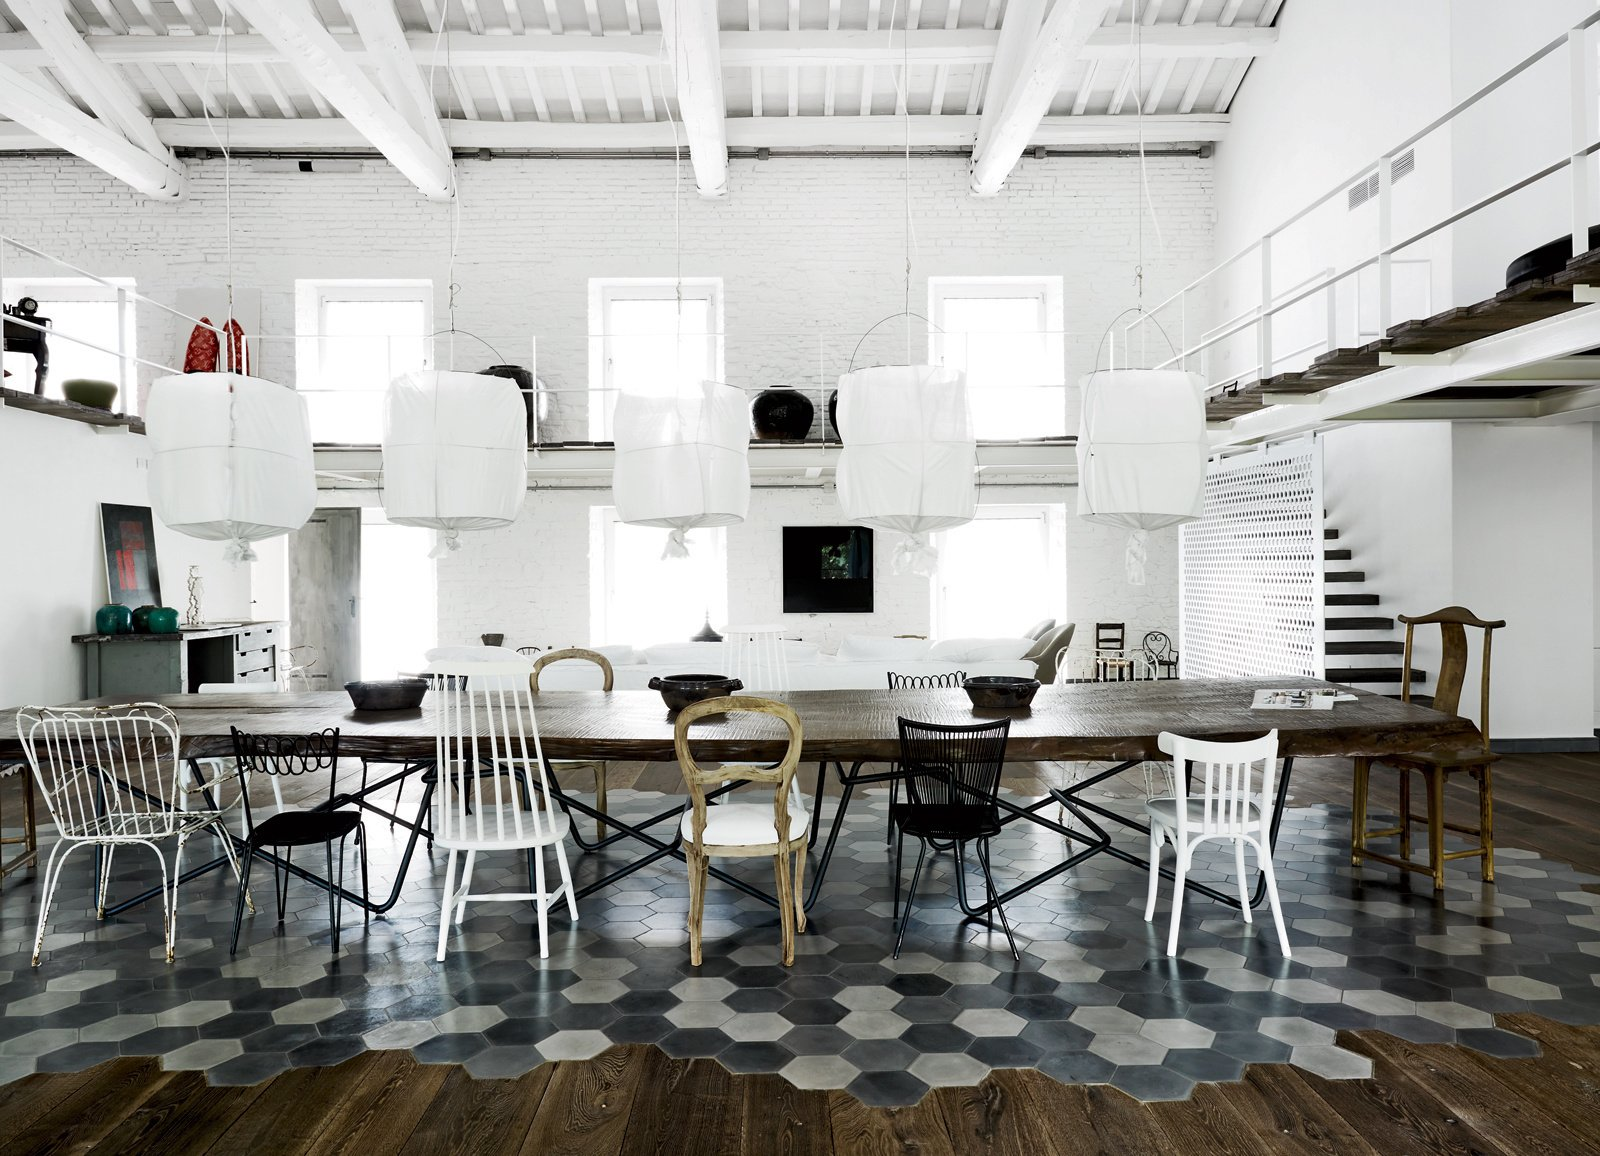 Visitors pass by a sentry wall of lamps from Design House Stockholm on their way to the airy living-dining room with 52 windows. Photo by: Wichmann + Bendtsen  Modern Italian Renovations  by Matthew Keeshin from Curated Collections